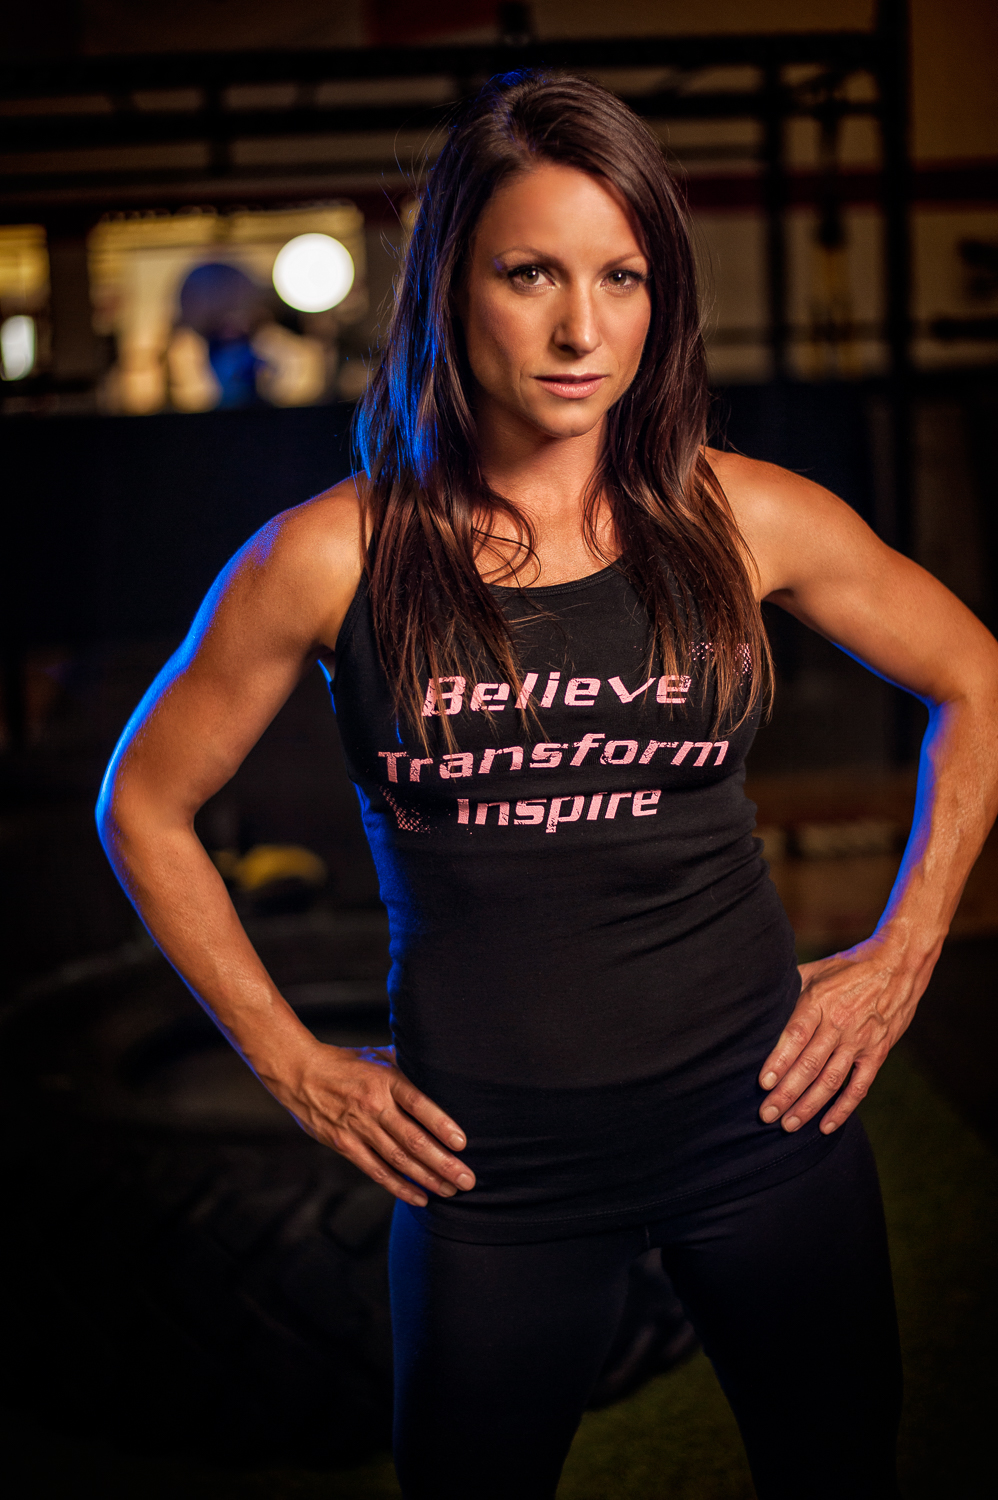 Hamilton Toronto Fitness Photographer - Metamorfose Clothing Line Believe Transform Inspire by Marek Michalek.jpg